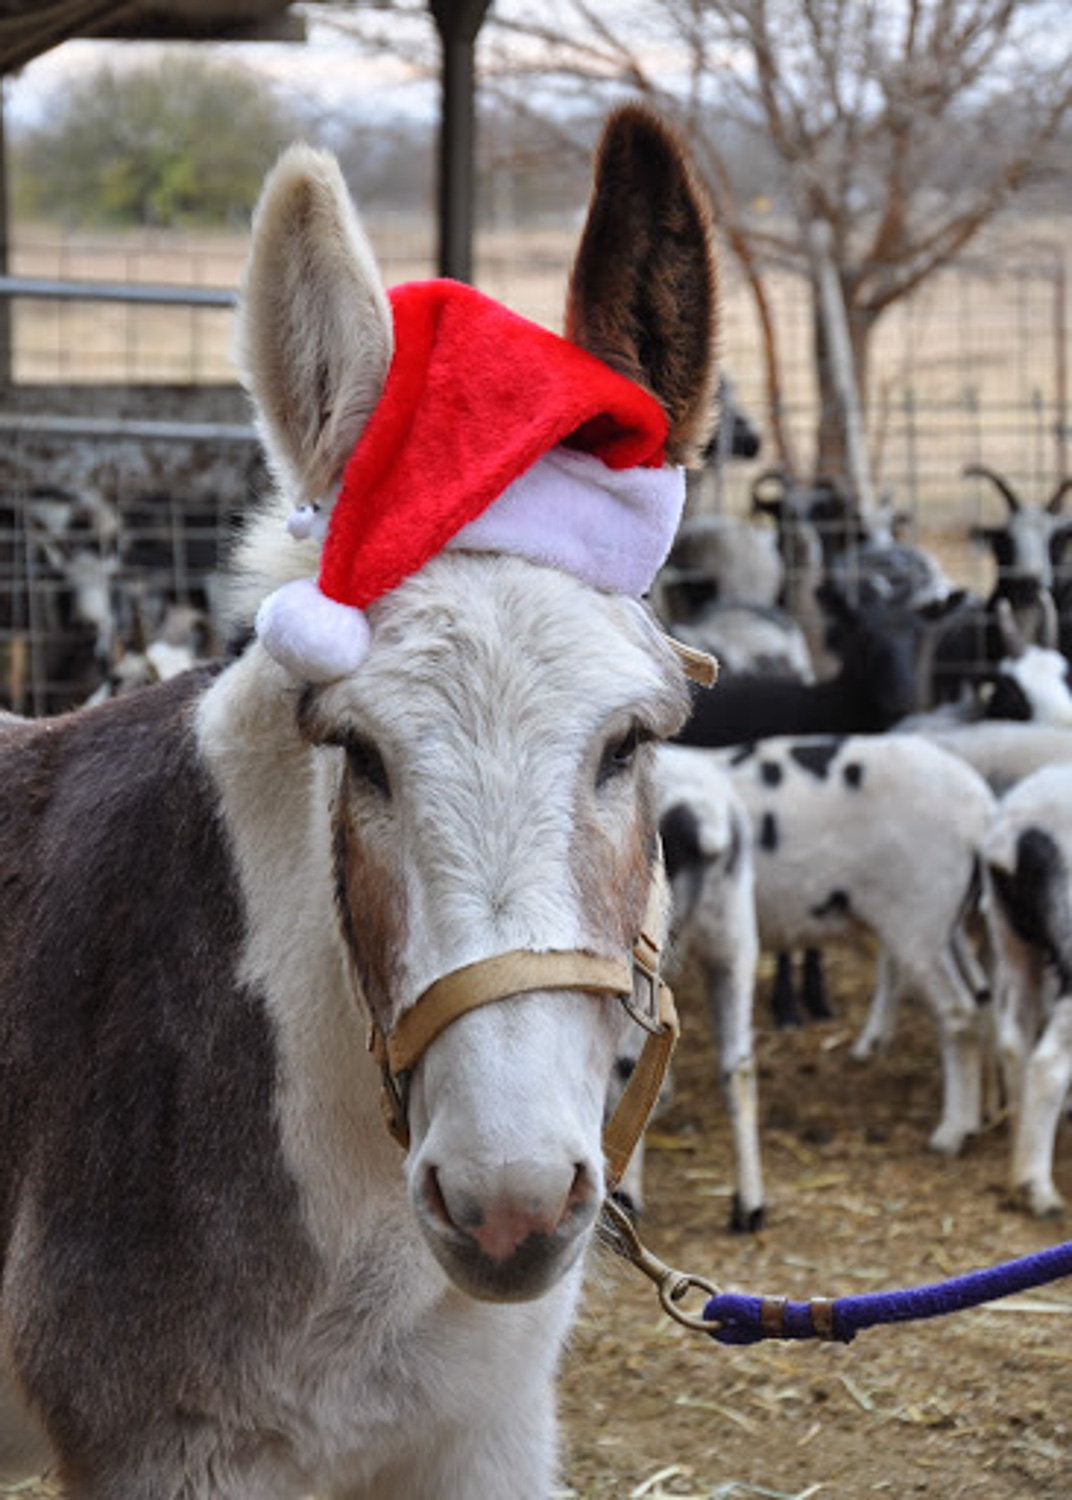 Donkey in Christmas hat.